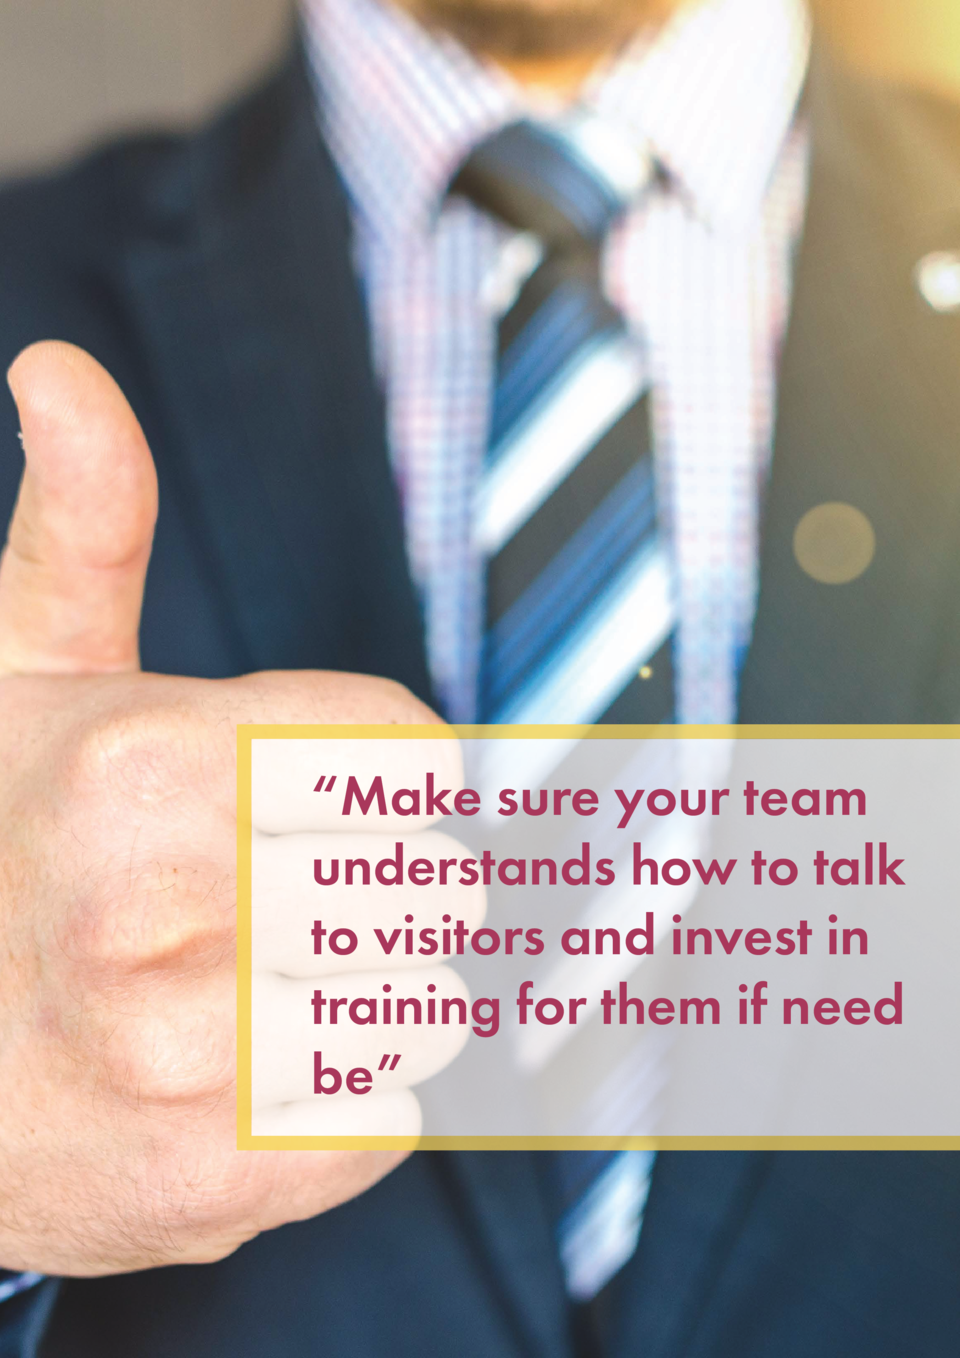 Make sure your team understands how to talk to visitors and invest in training for them if need be